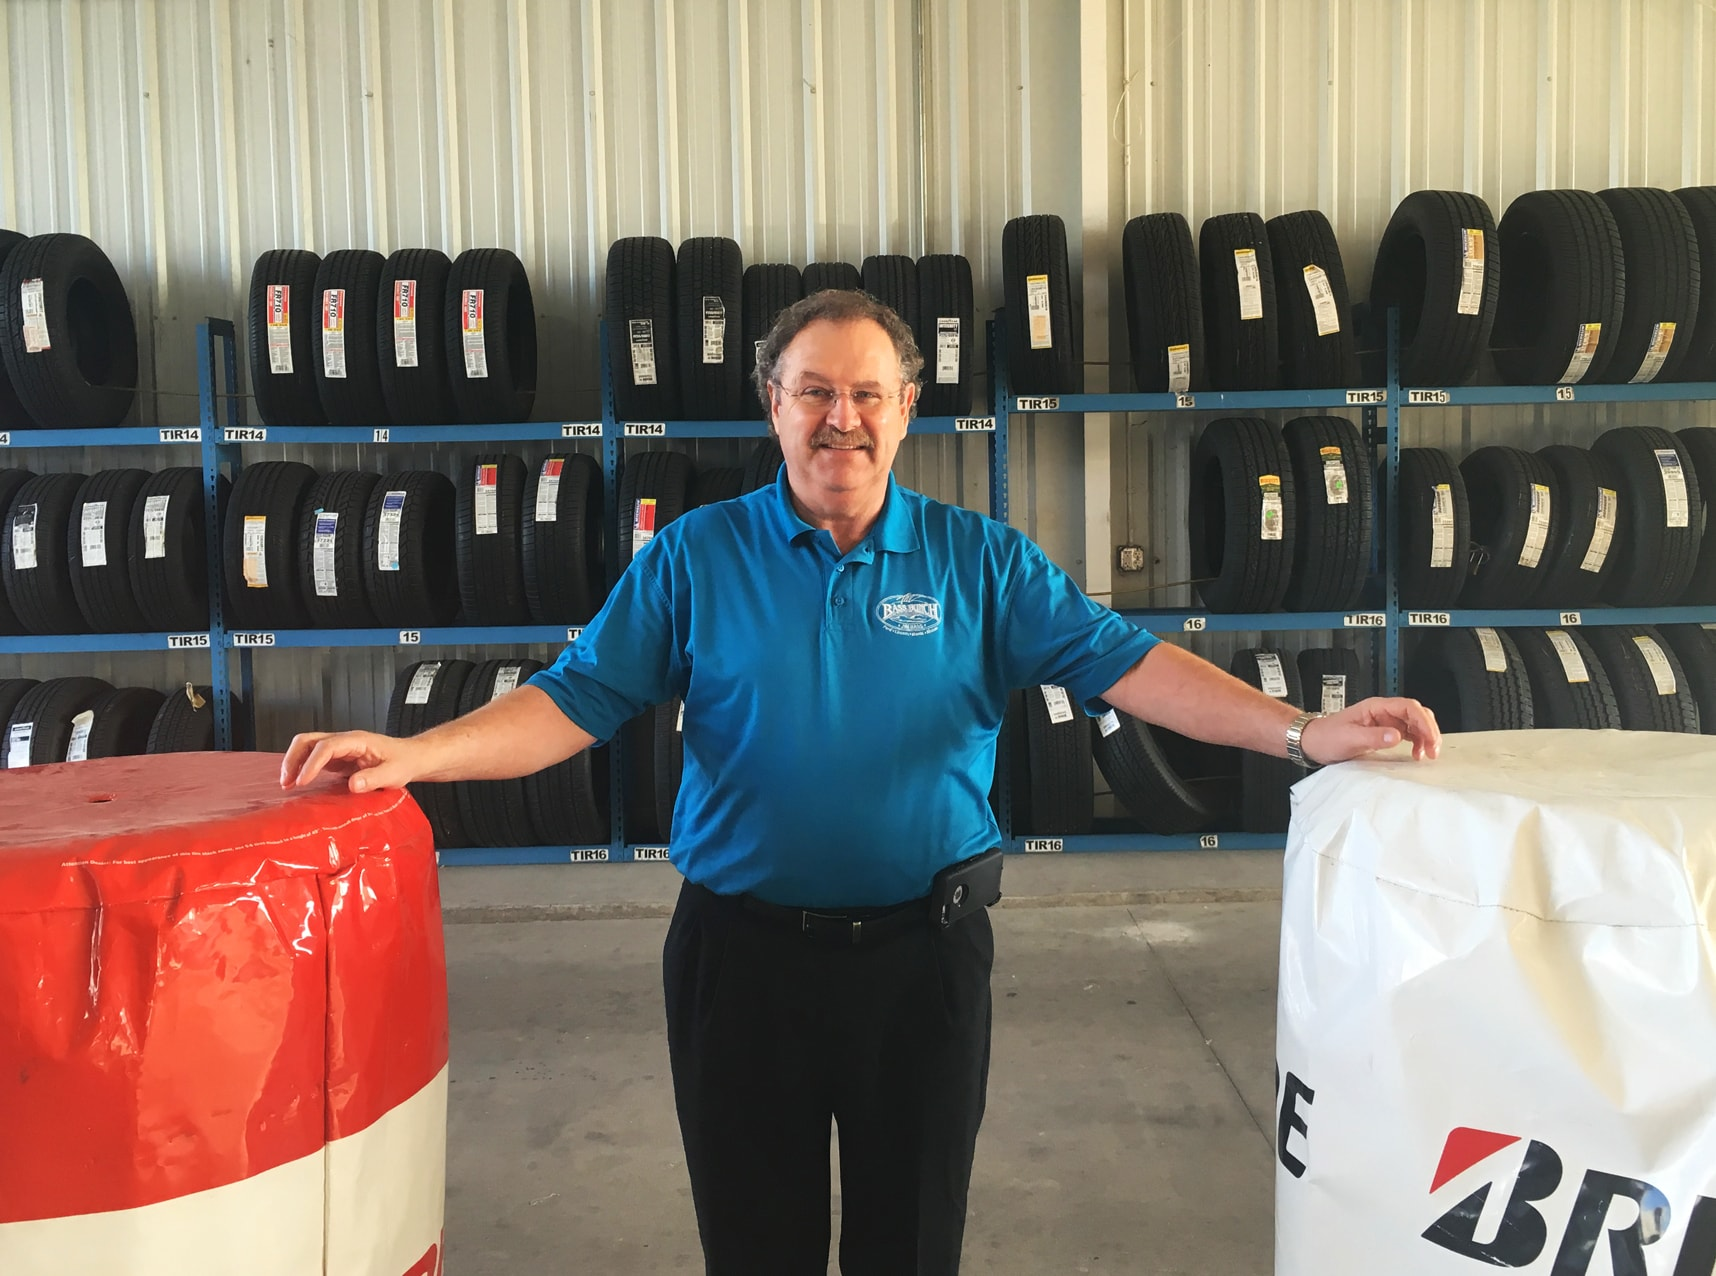 eddie rose is in his 5th year as fixed operations director here with the bass bunch lending our service department his over three decades of experience - Fixed Operations Director